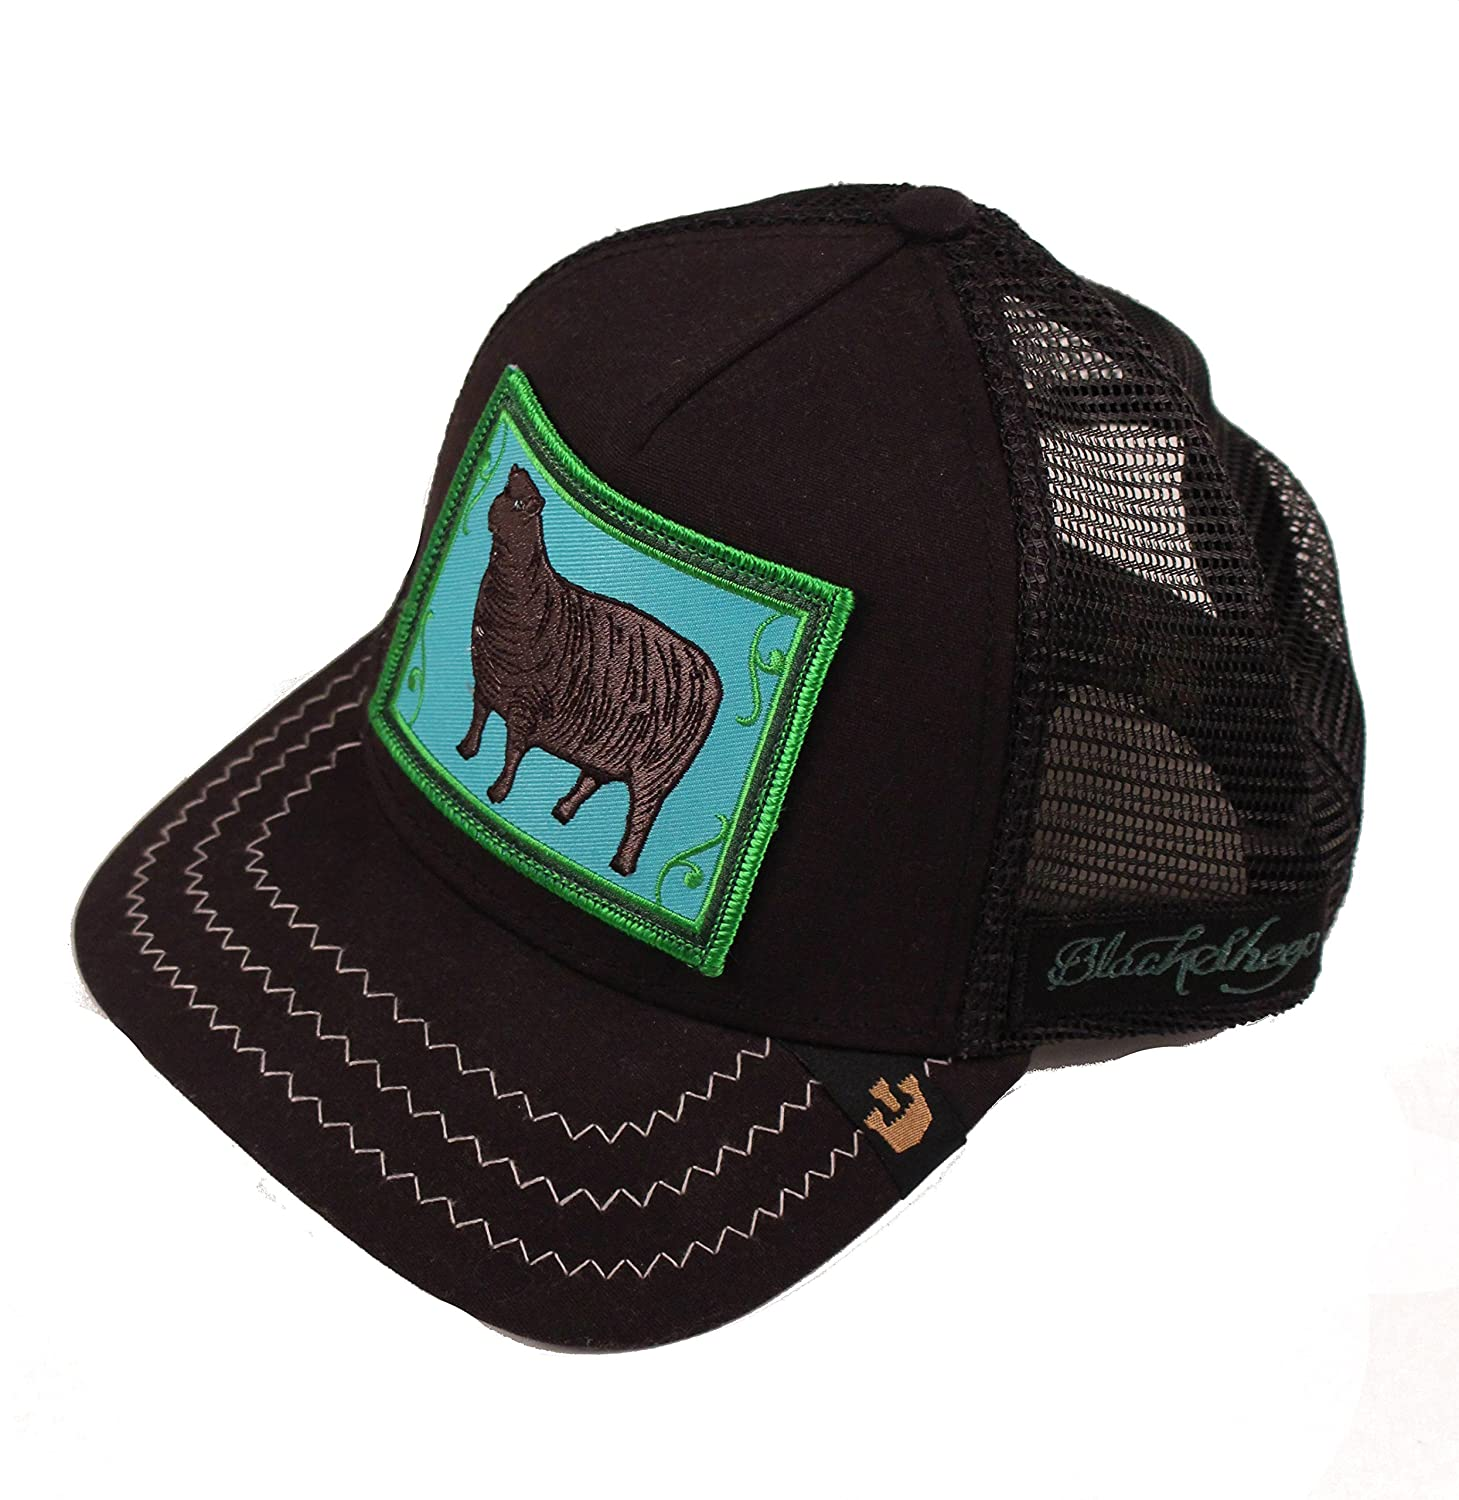 6137c709ad1fb Animal Farm - Black Sheep Trucker Cap at Amazon Men s Clothing store